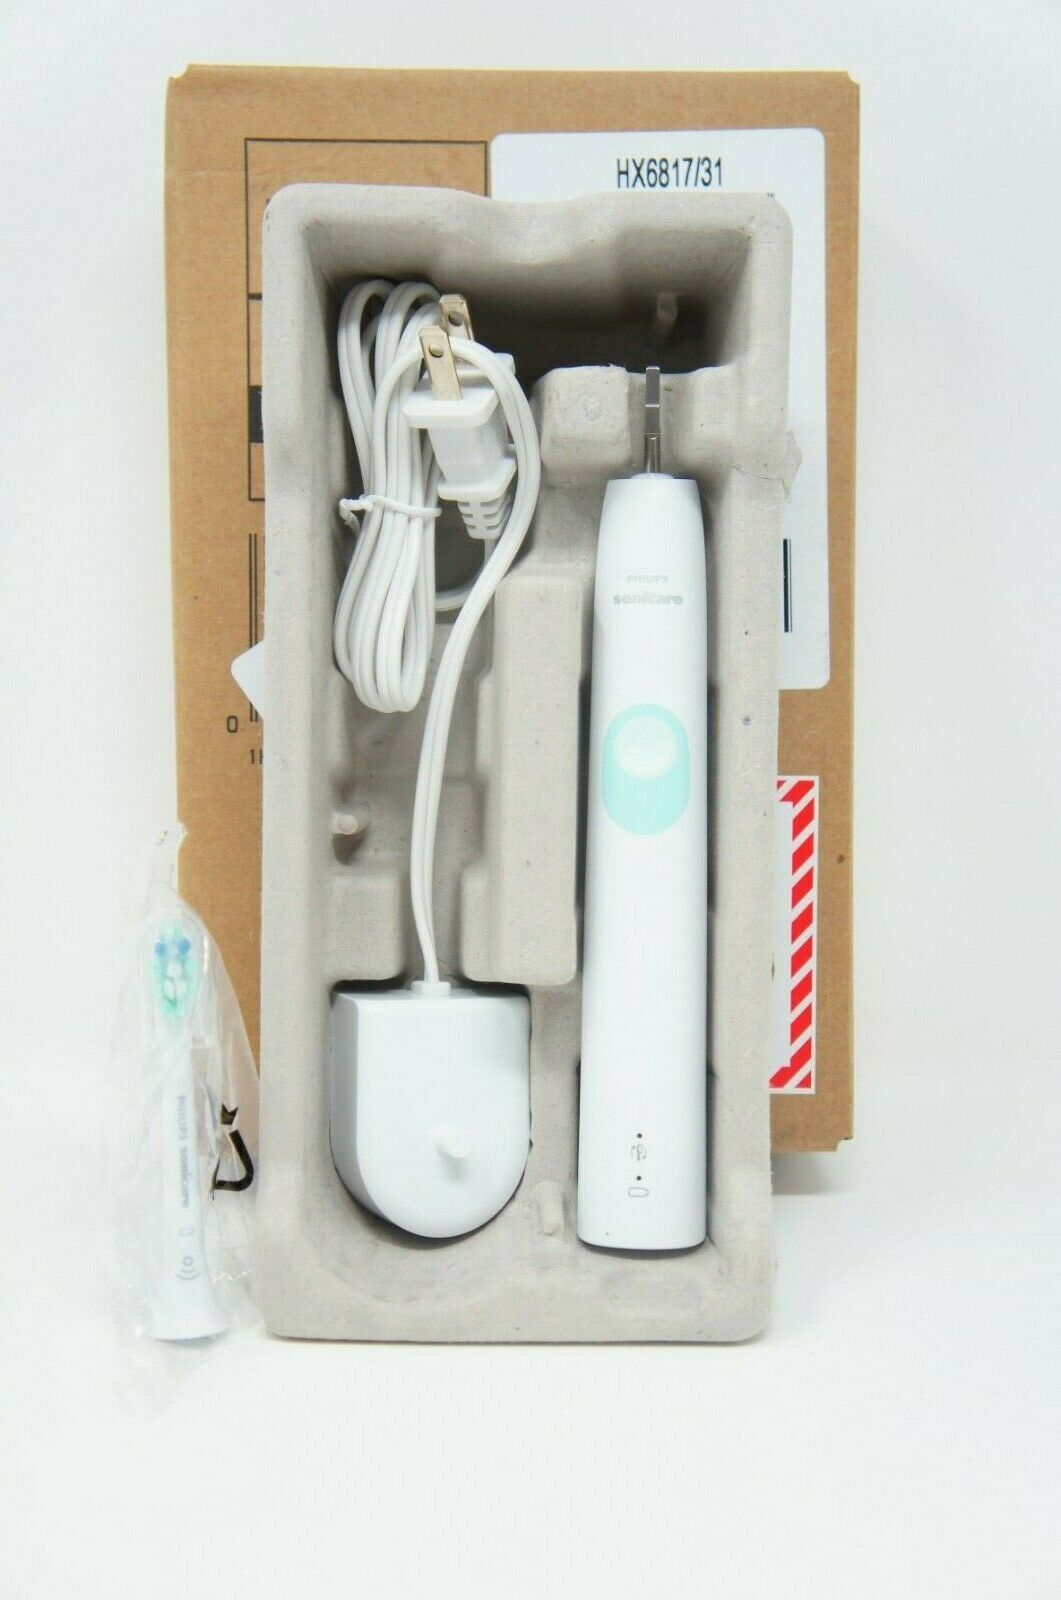 Philips Sonicare ProtectiveClean 4100 Plaque Control, Rechargeable electric toothbrush with pressure sensor, White Mint HX6817/01 (Like New)